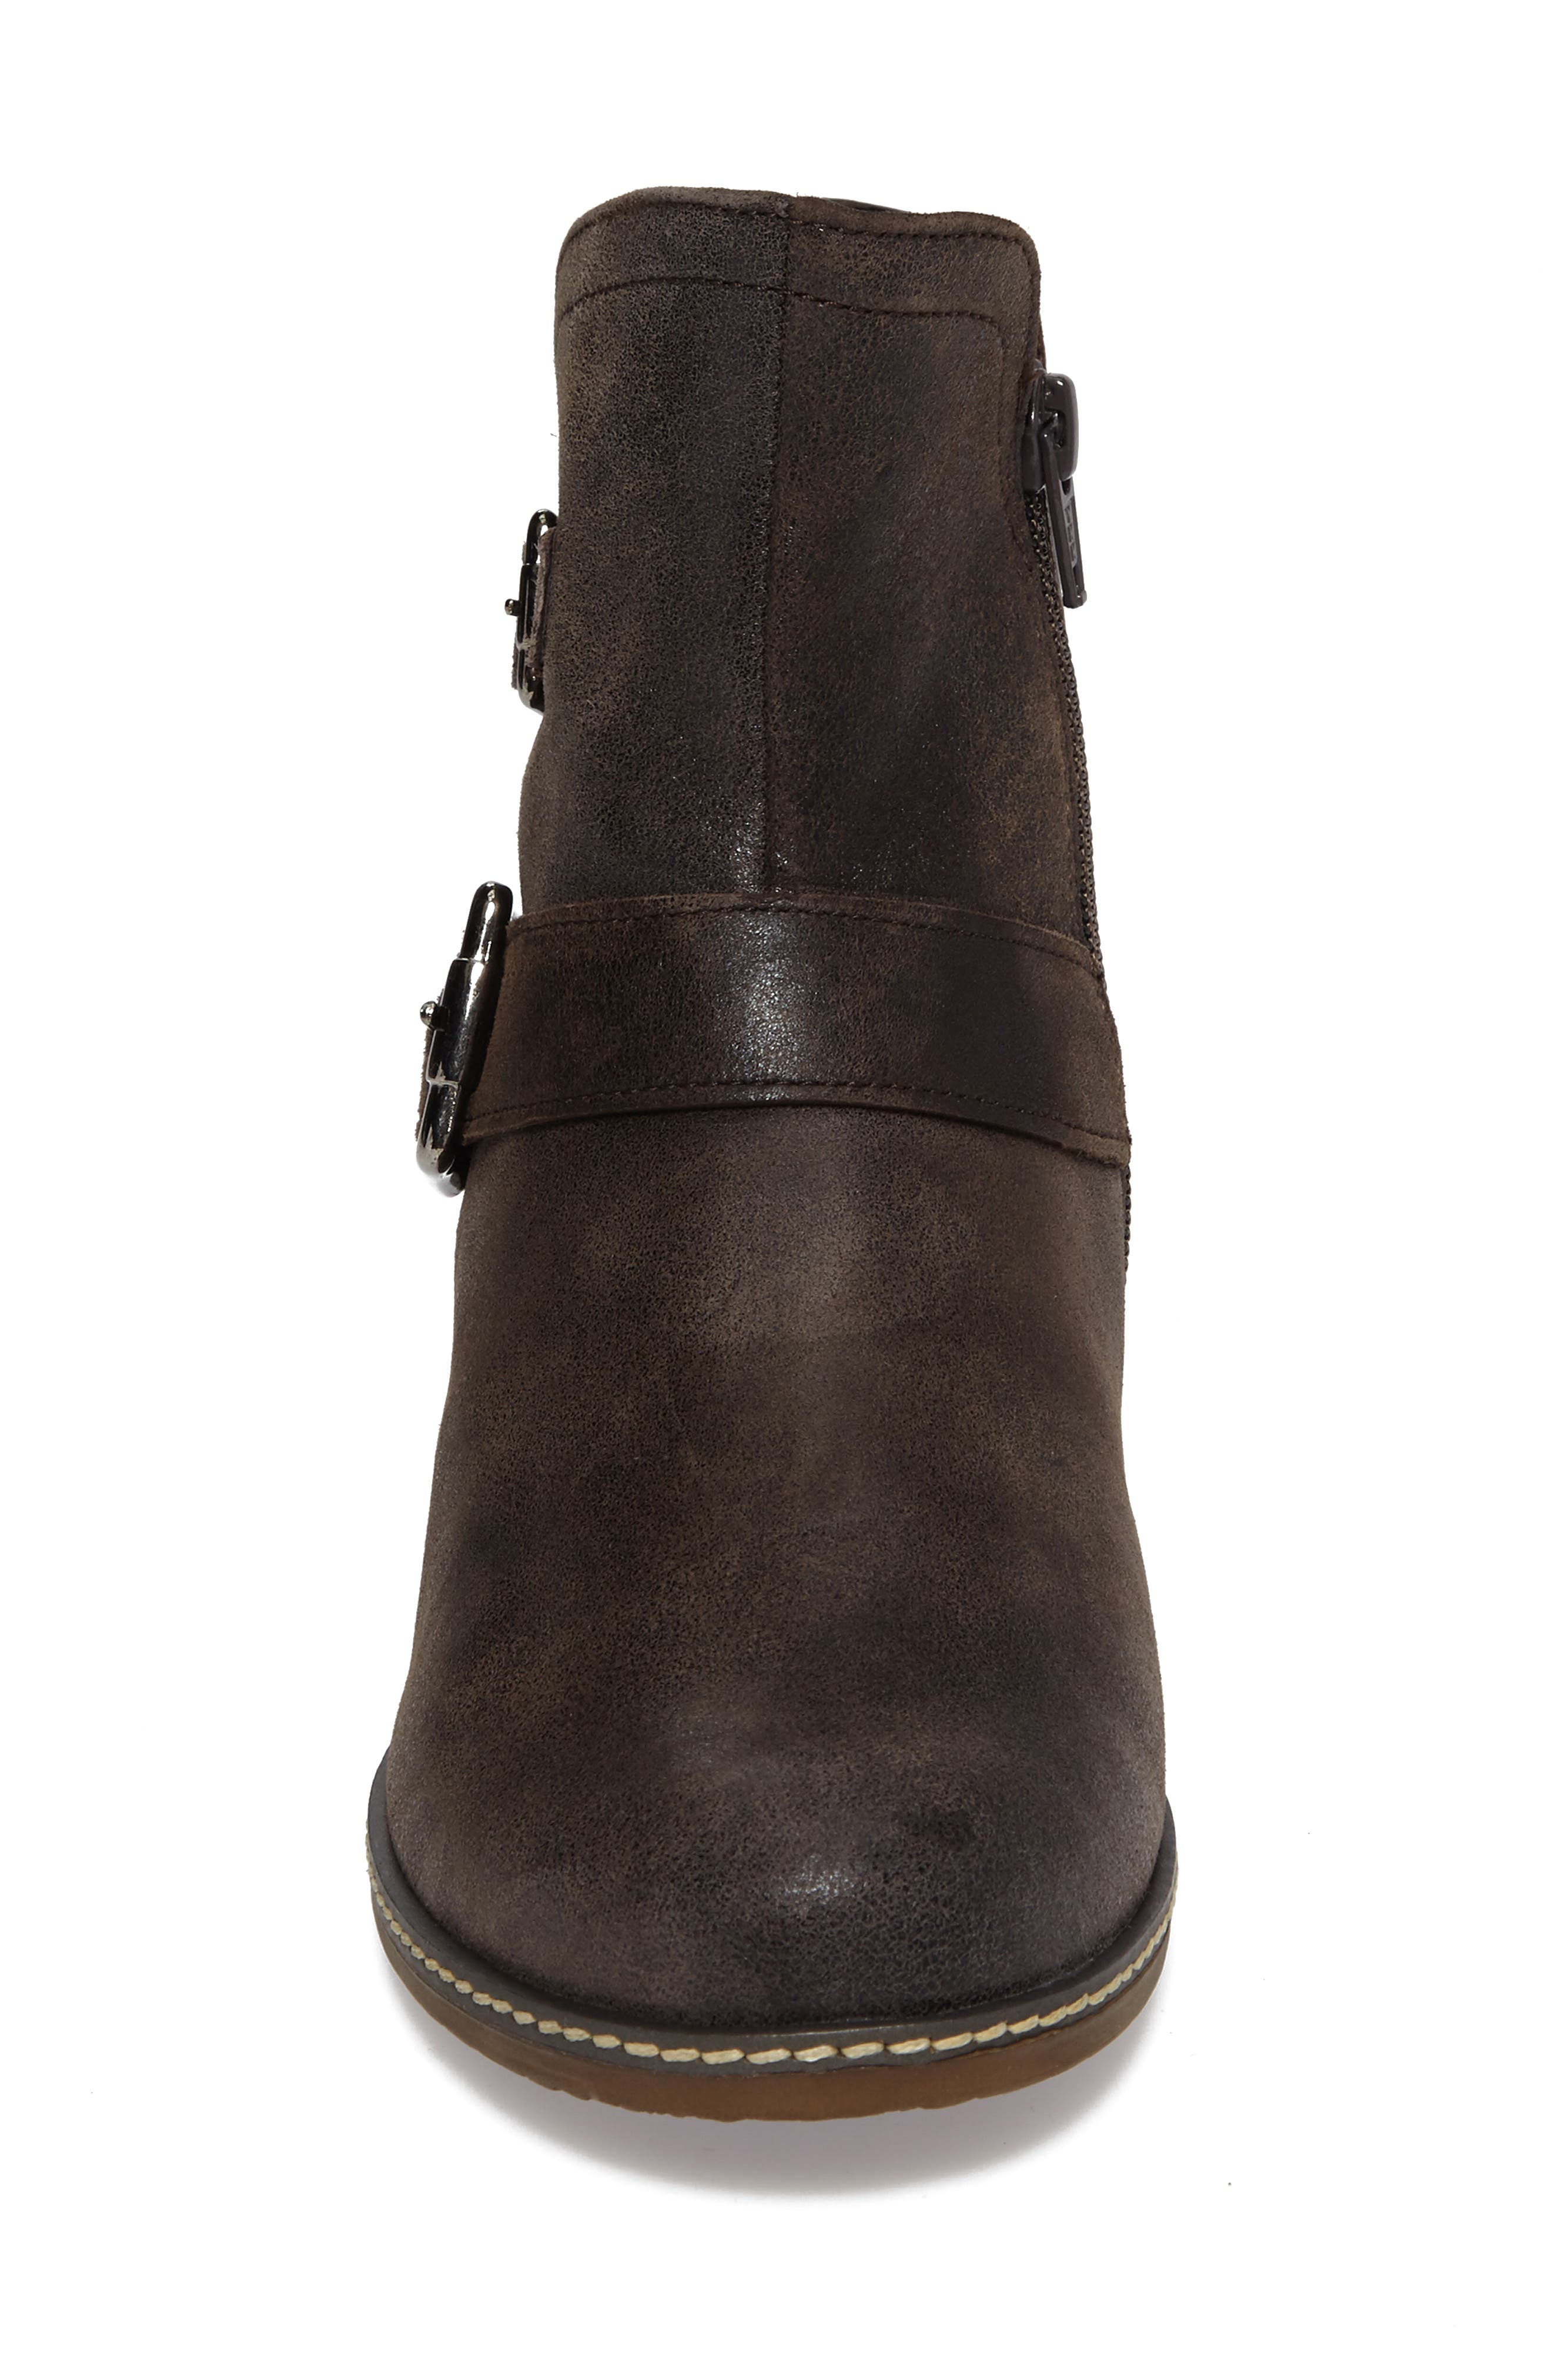 Buckle Bootie,                             Alternate thumbnail 4, color,                             Brown Leather